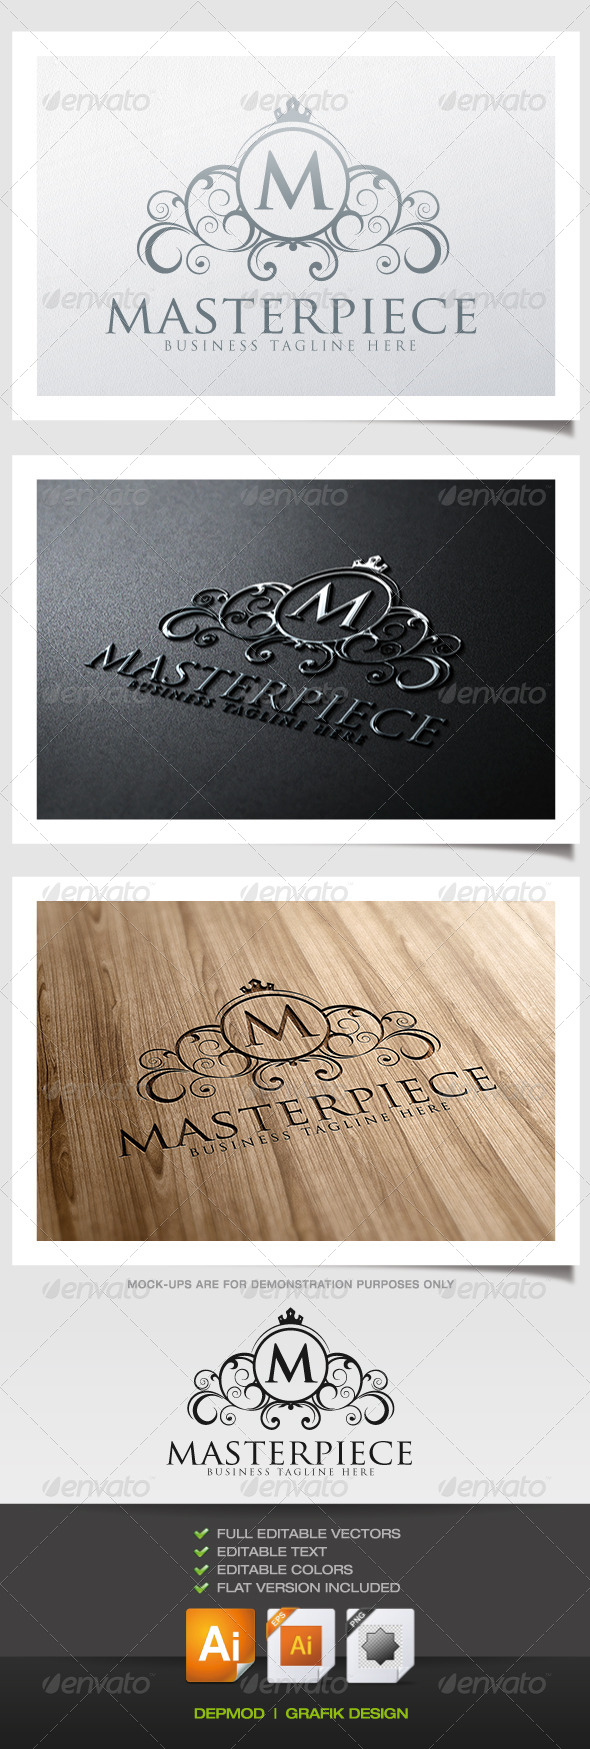 GraphicRiver Masterpiece Logo 5697032